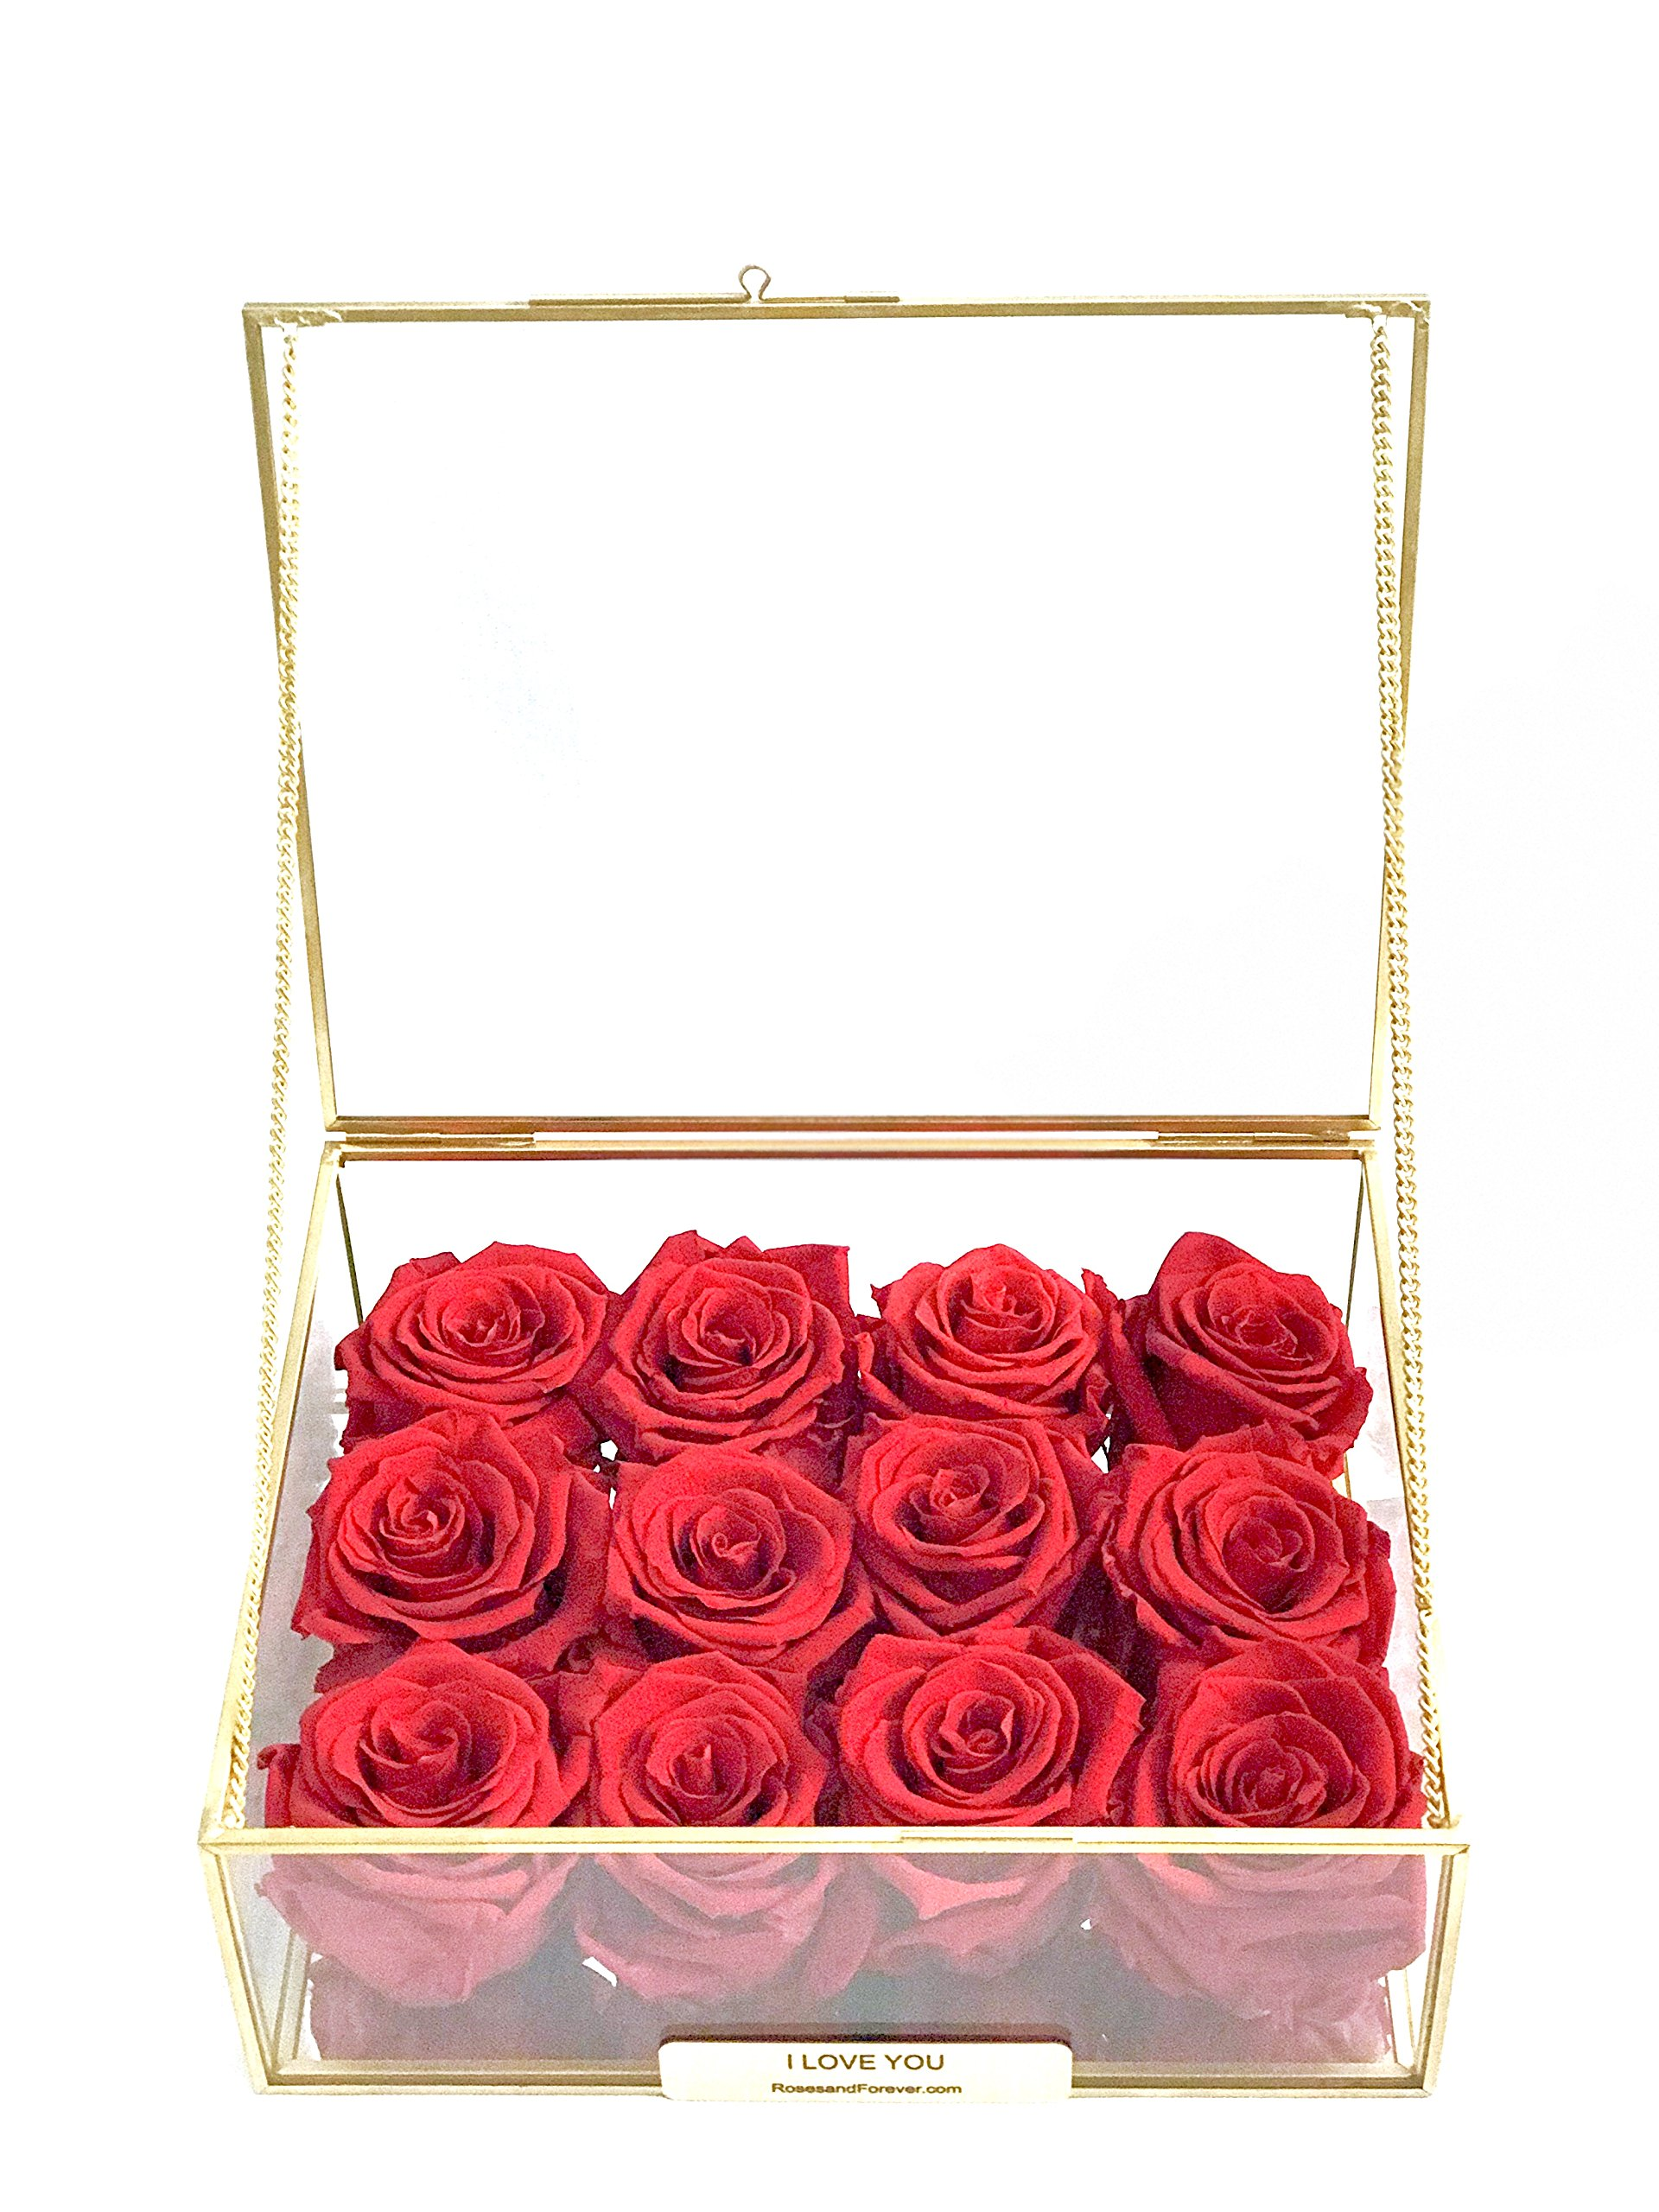 The Treasured ( 12 World's Longest Lasting Roses - RED ) Enclosed in a golden framed glass rectangular prism '' SHE WILL LOVE IT ''